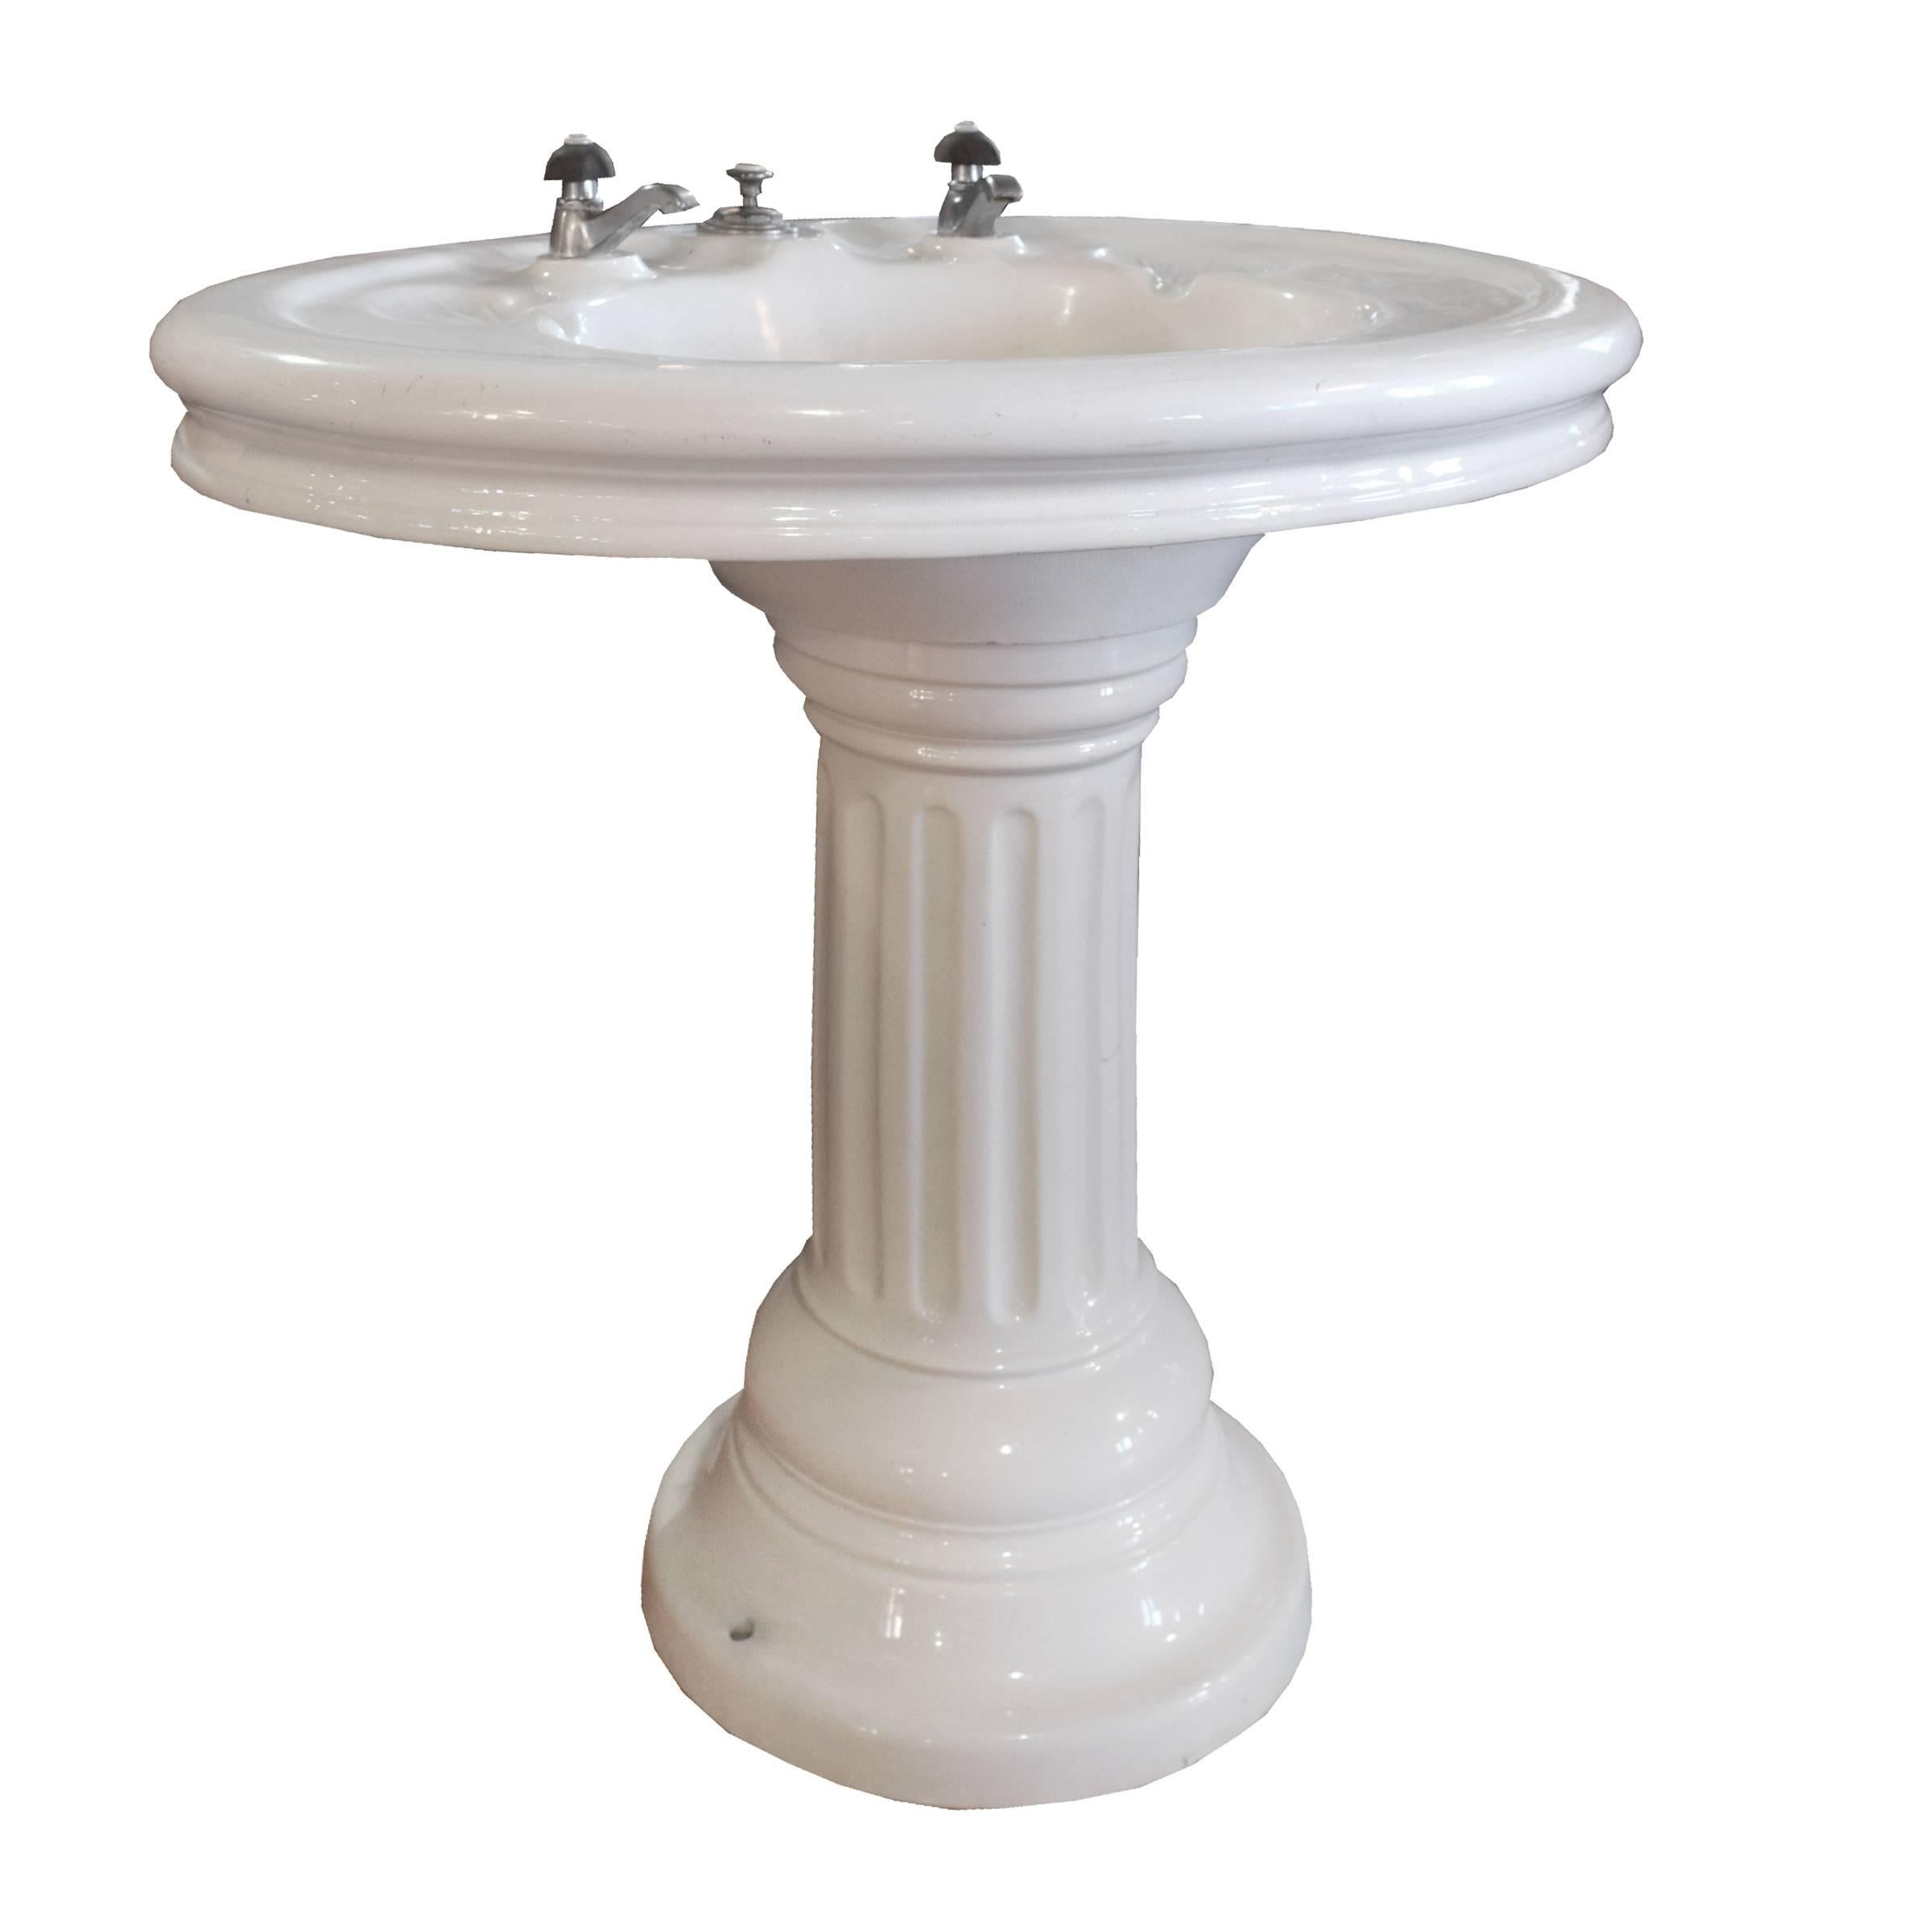 Genial A Lovely French Porcelain Pedestal Sink With Two Shell Shaped Soap Holders,  Anconetti Of Paris